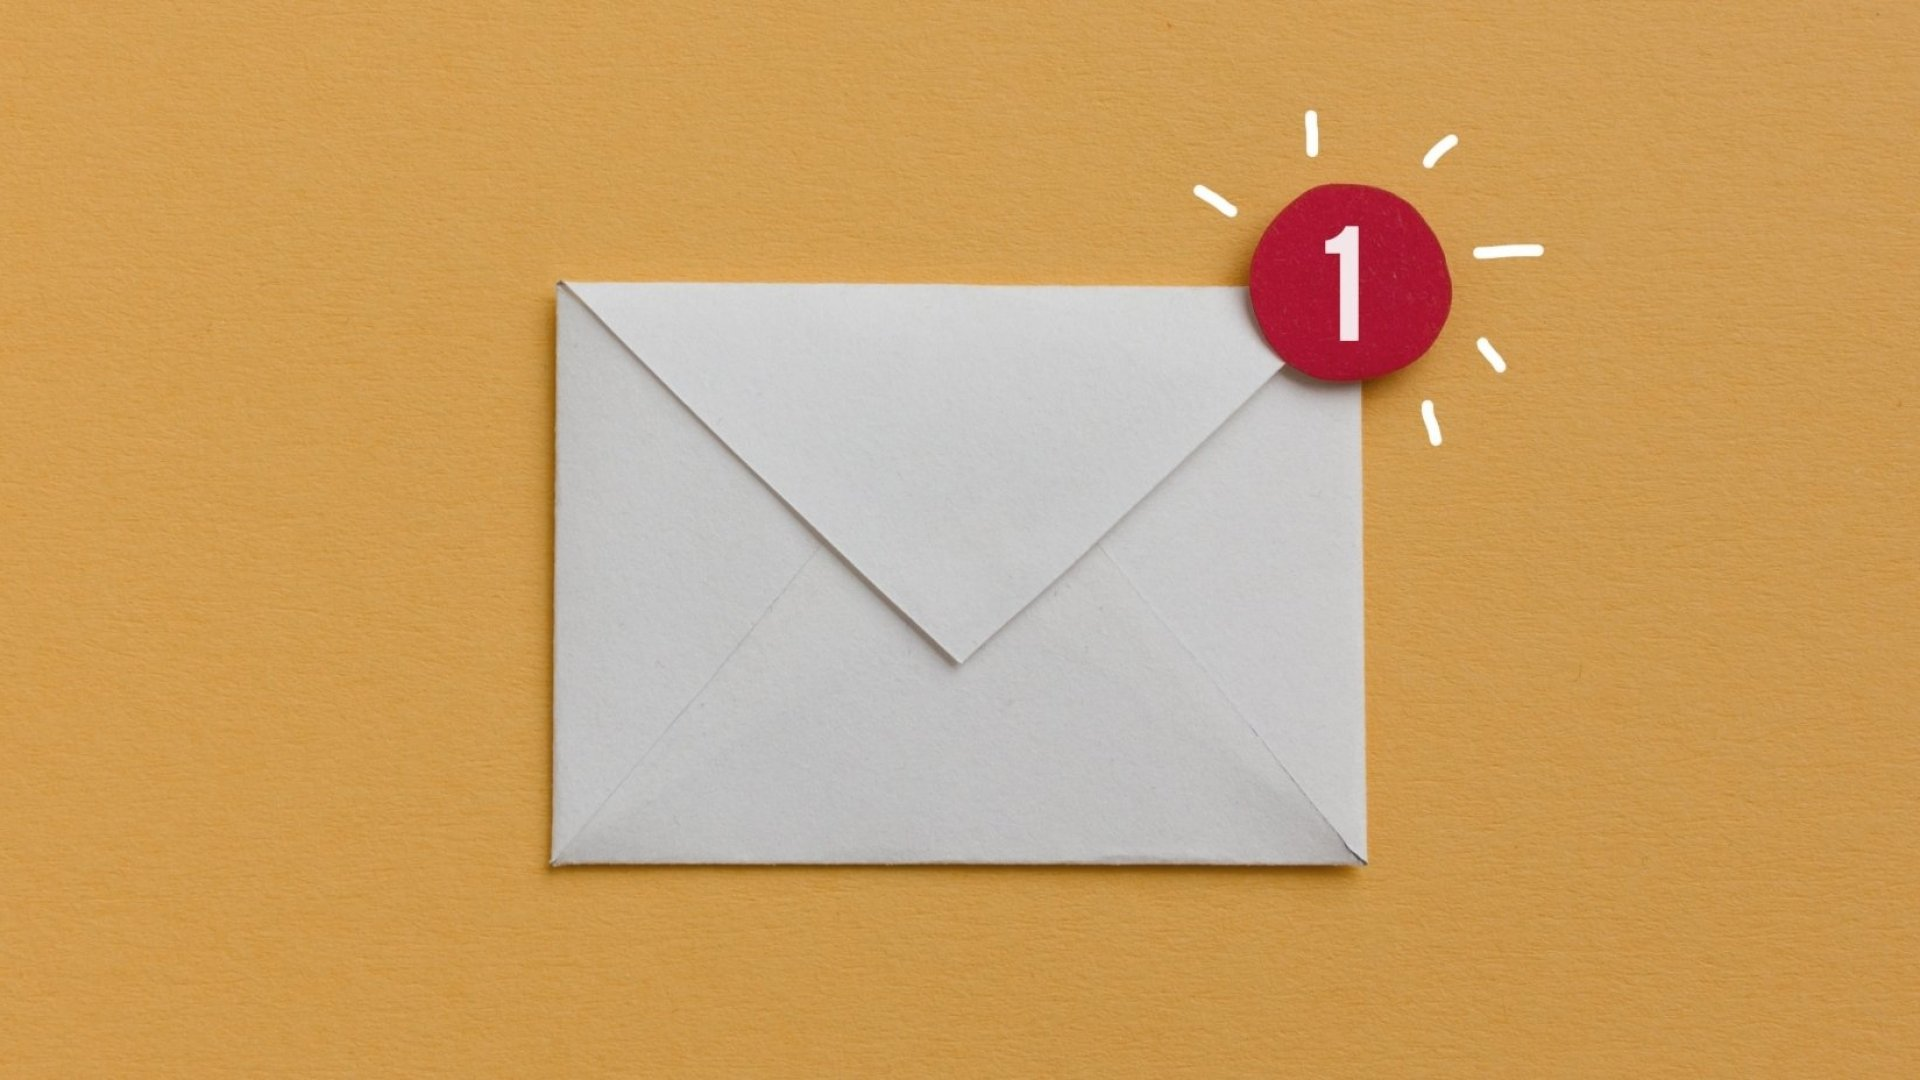 8 Ways to Make Sure Your Sales Emails Never Go to Spam